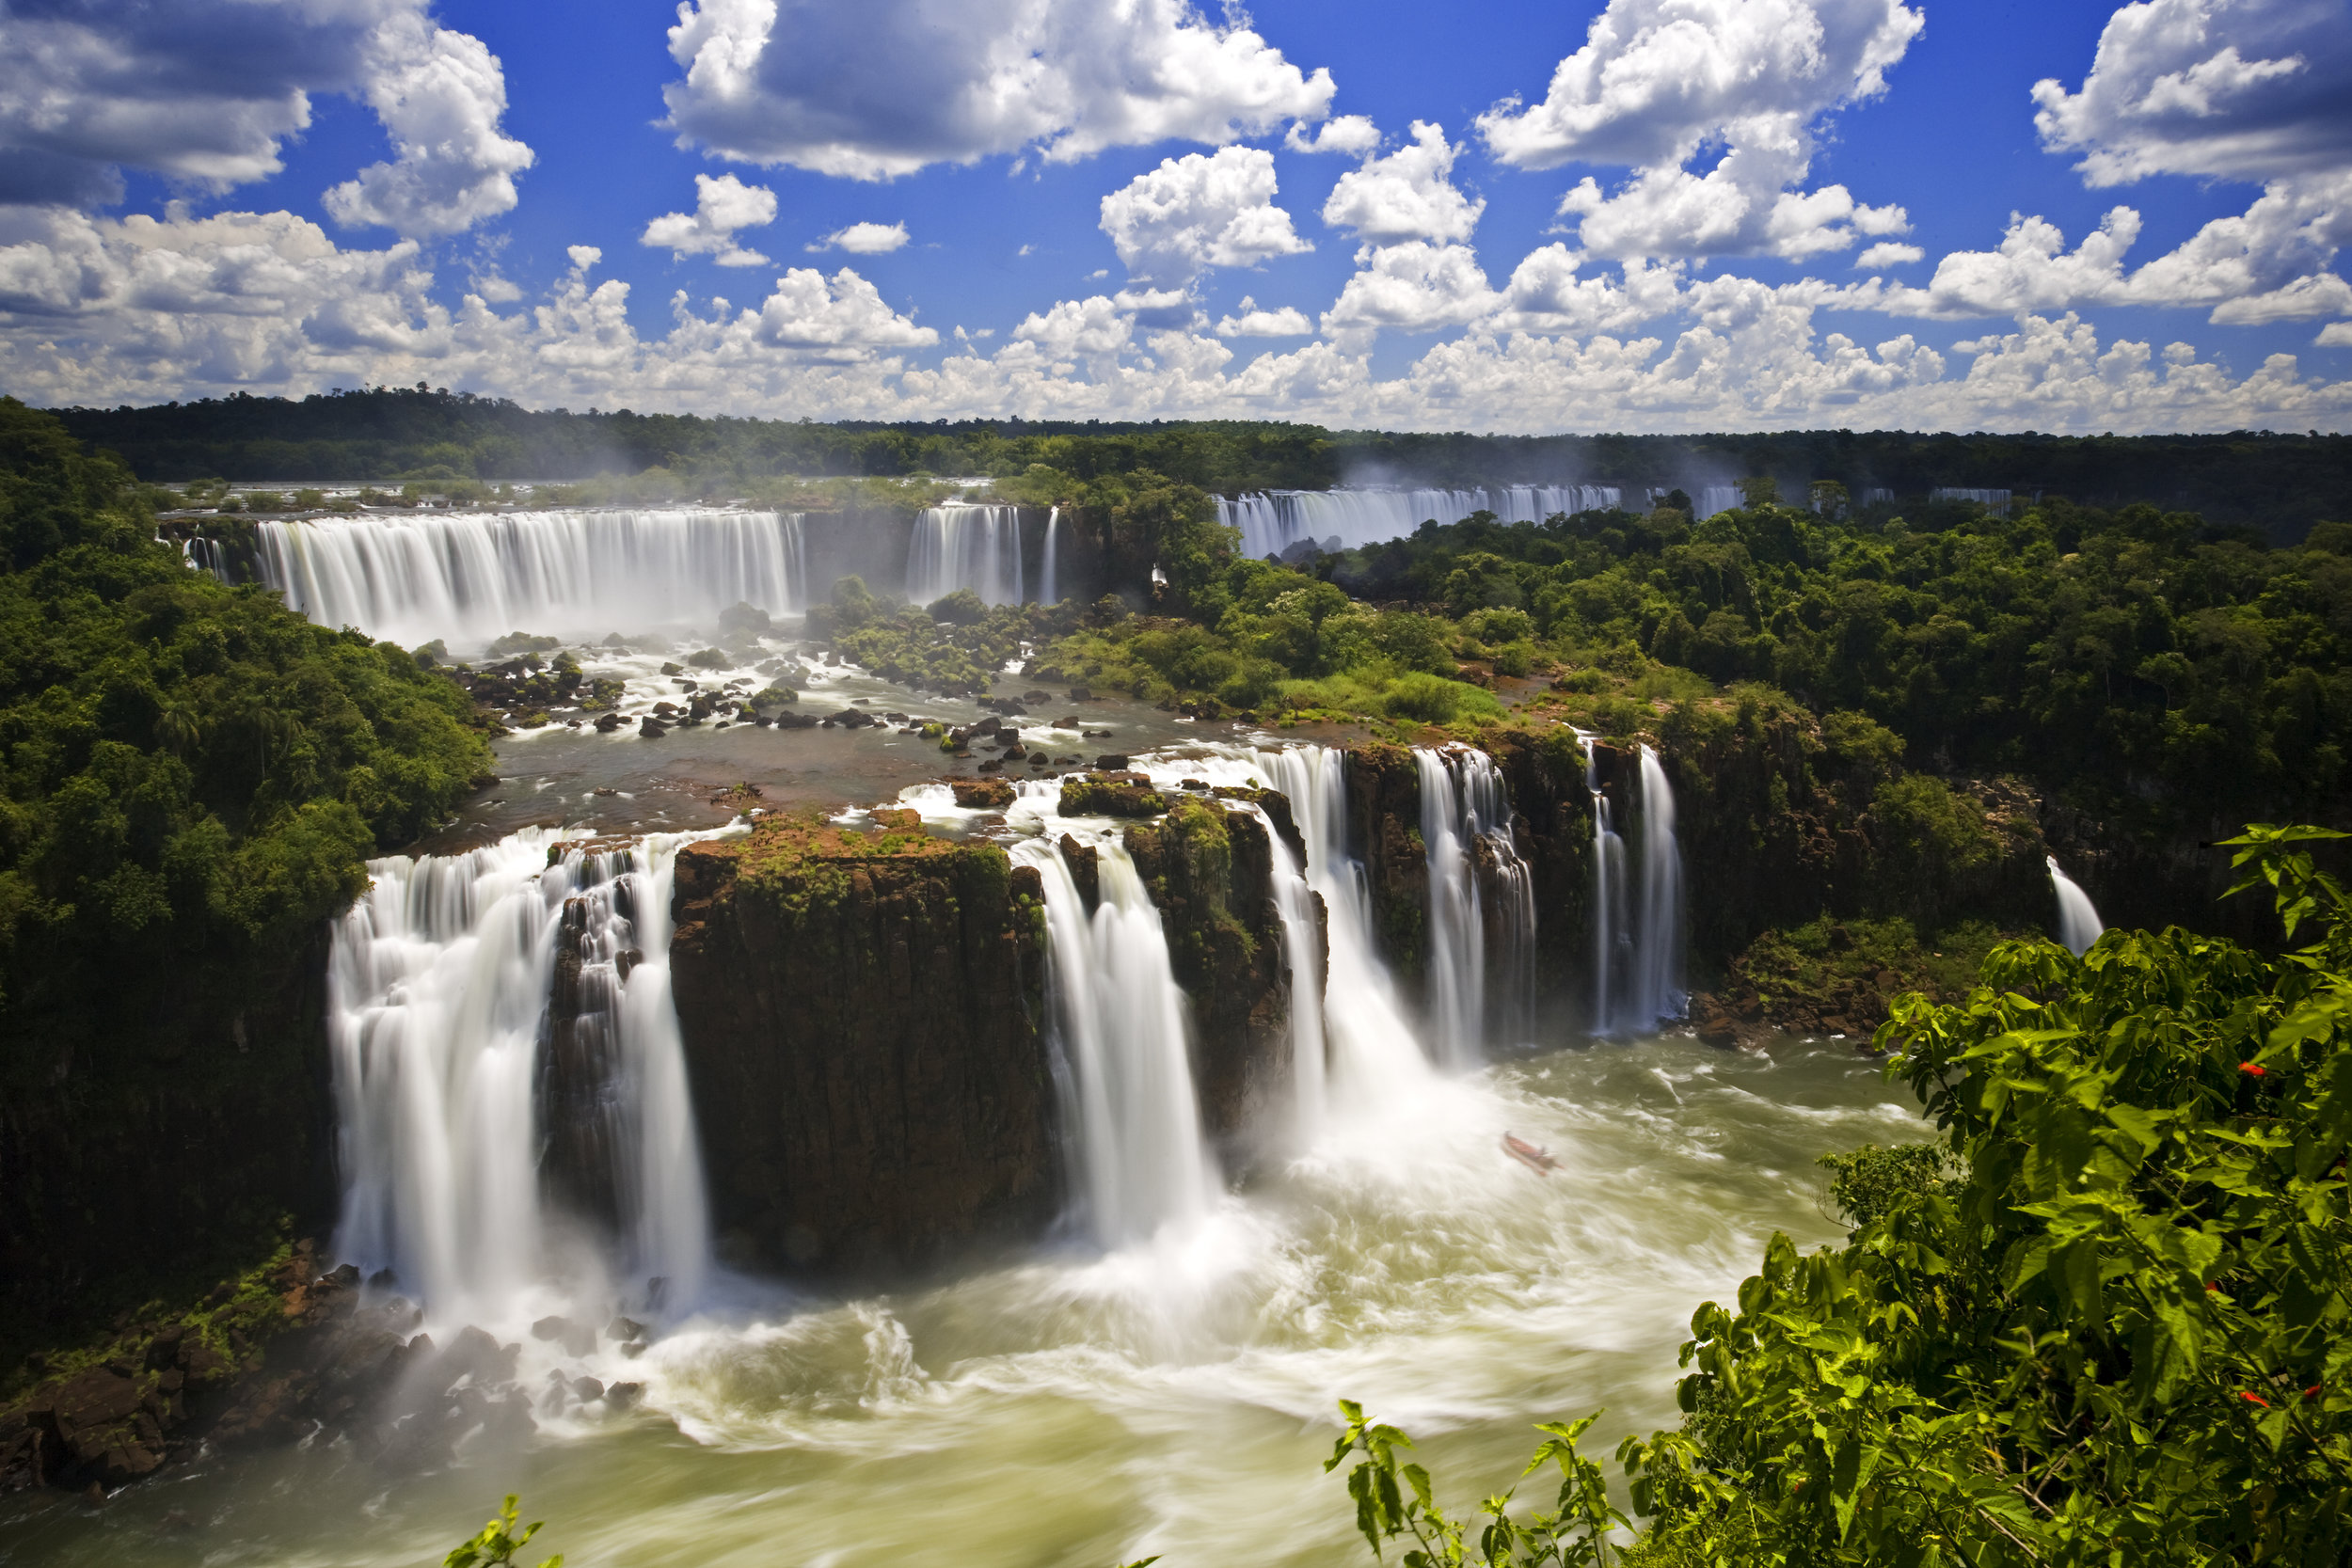 Splendid View of Iguazu Falls